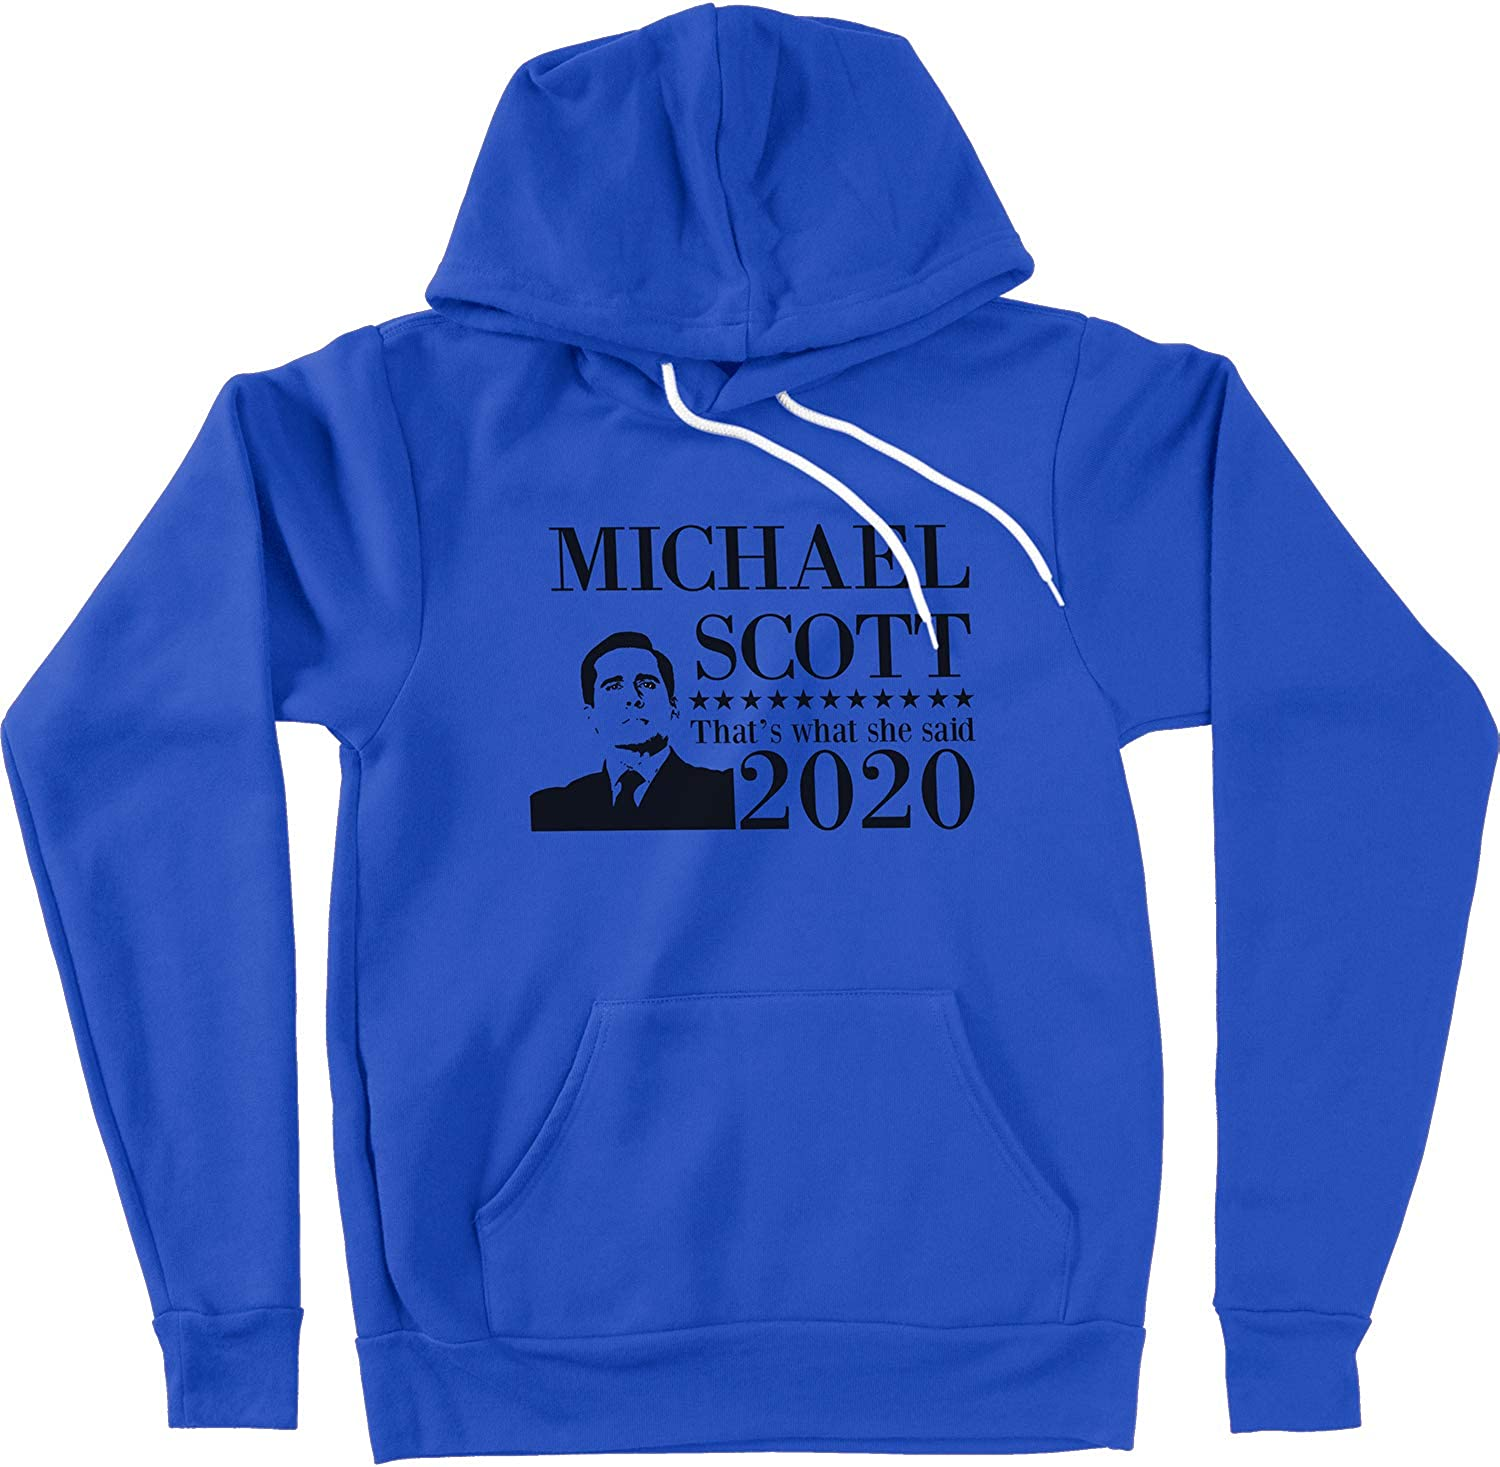 Michael Scott for 2020 President Election The Office Funny Unisex Sweater Pullover Hoodie